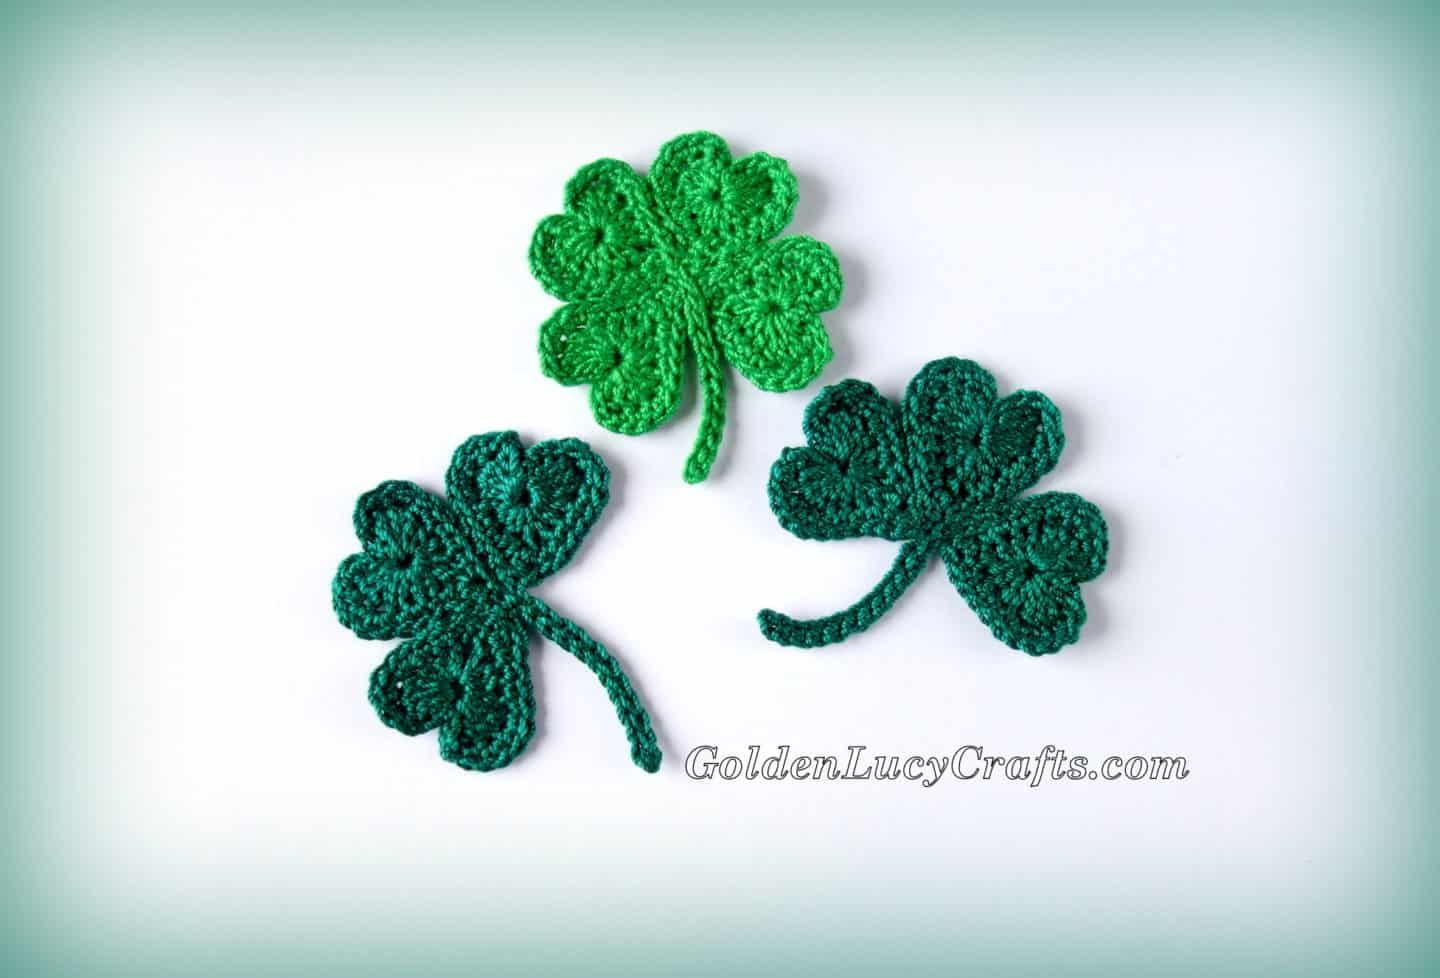 Crochet St Patrick's Day Shamrock and Lucky Clover Appliqués